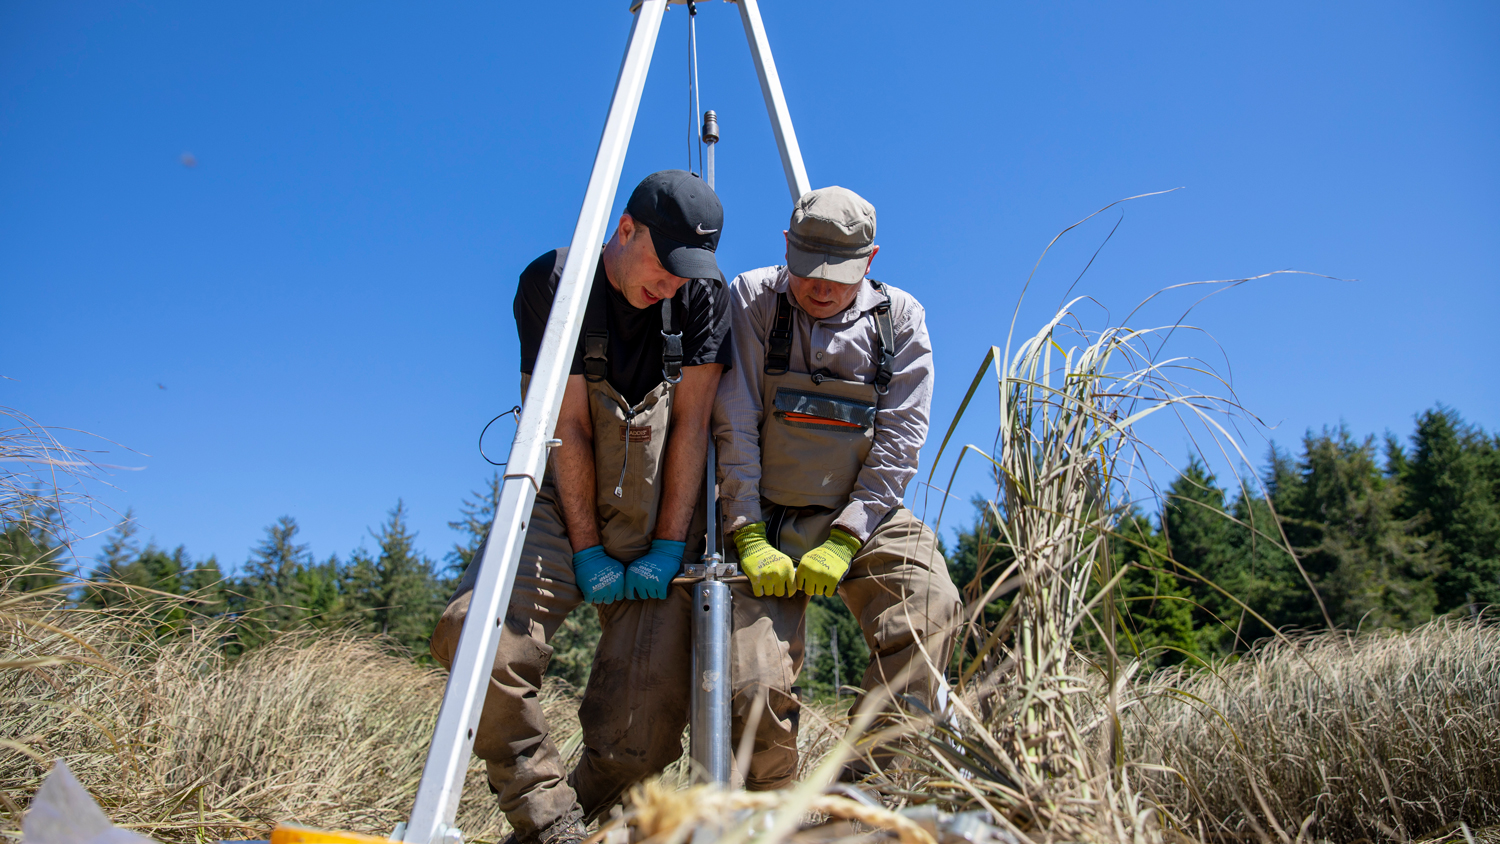 Two researchers in the field operate equipment in the South Slough near Coos Bay, Oregon.